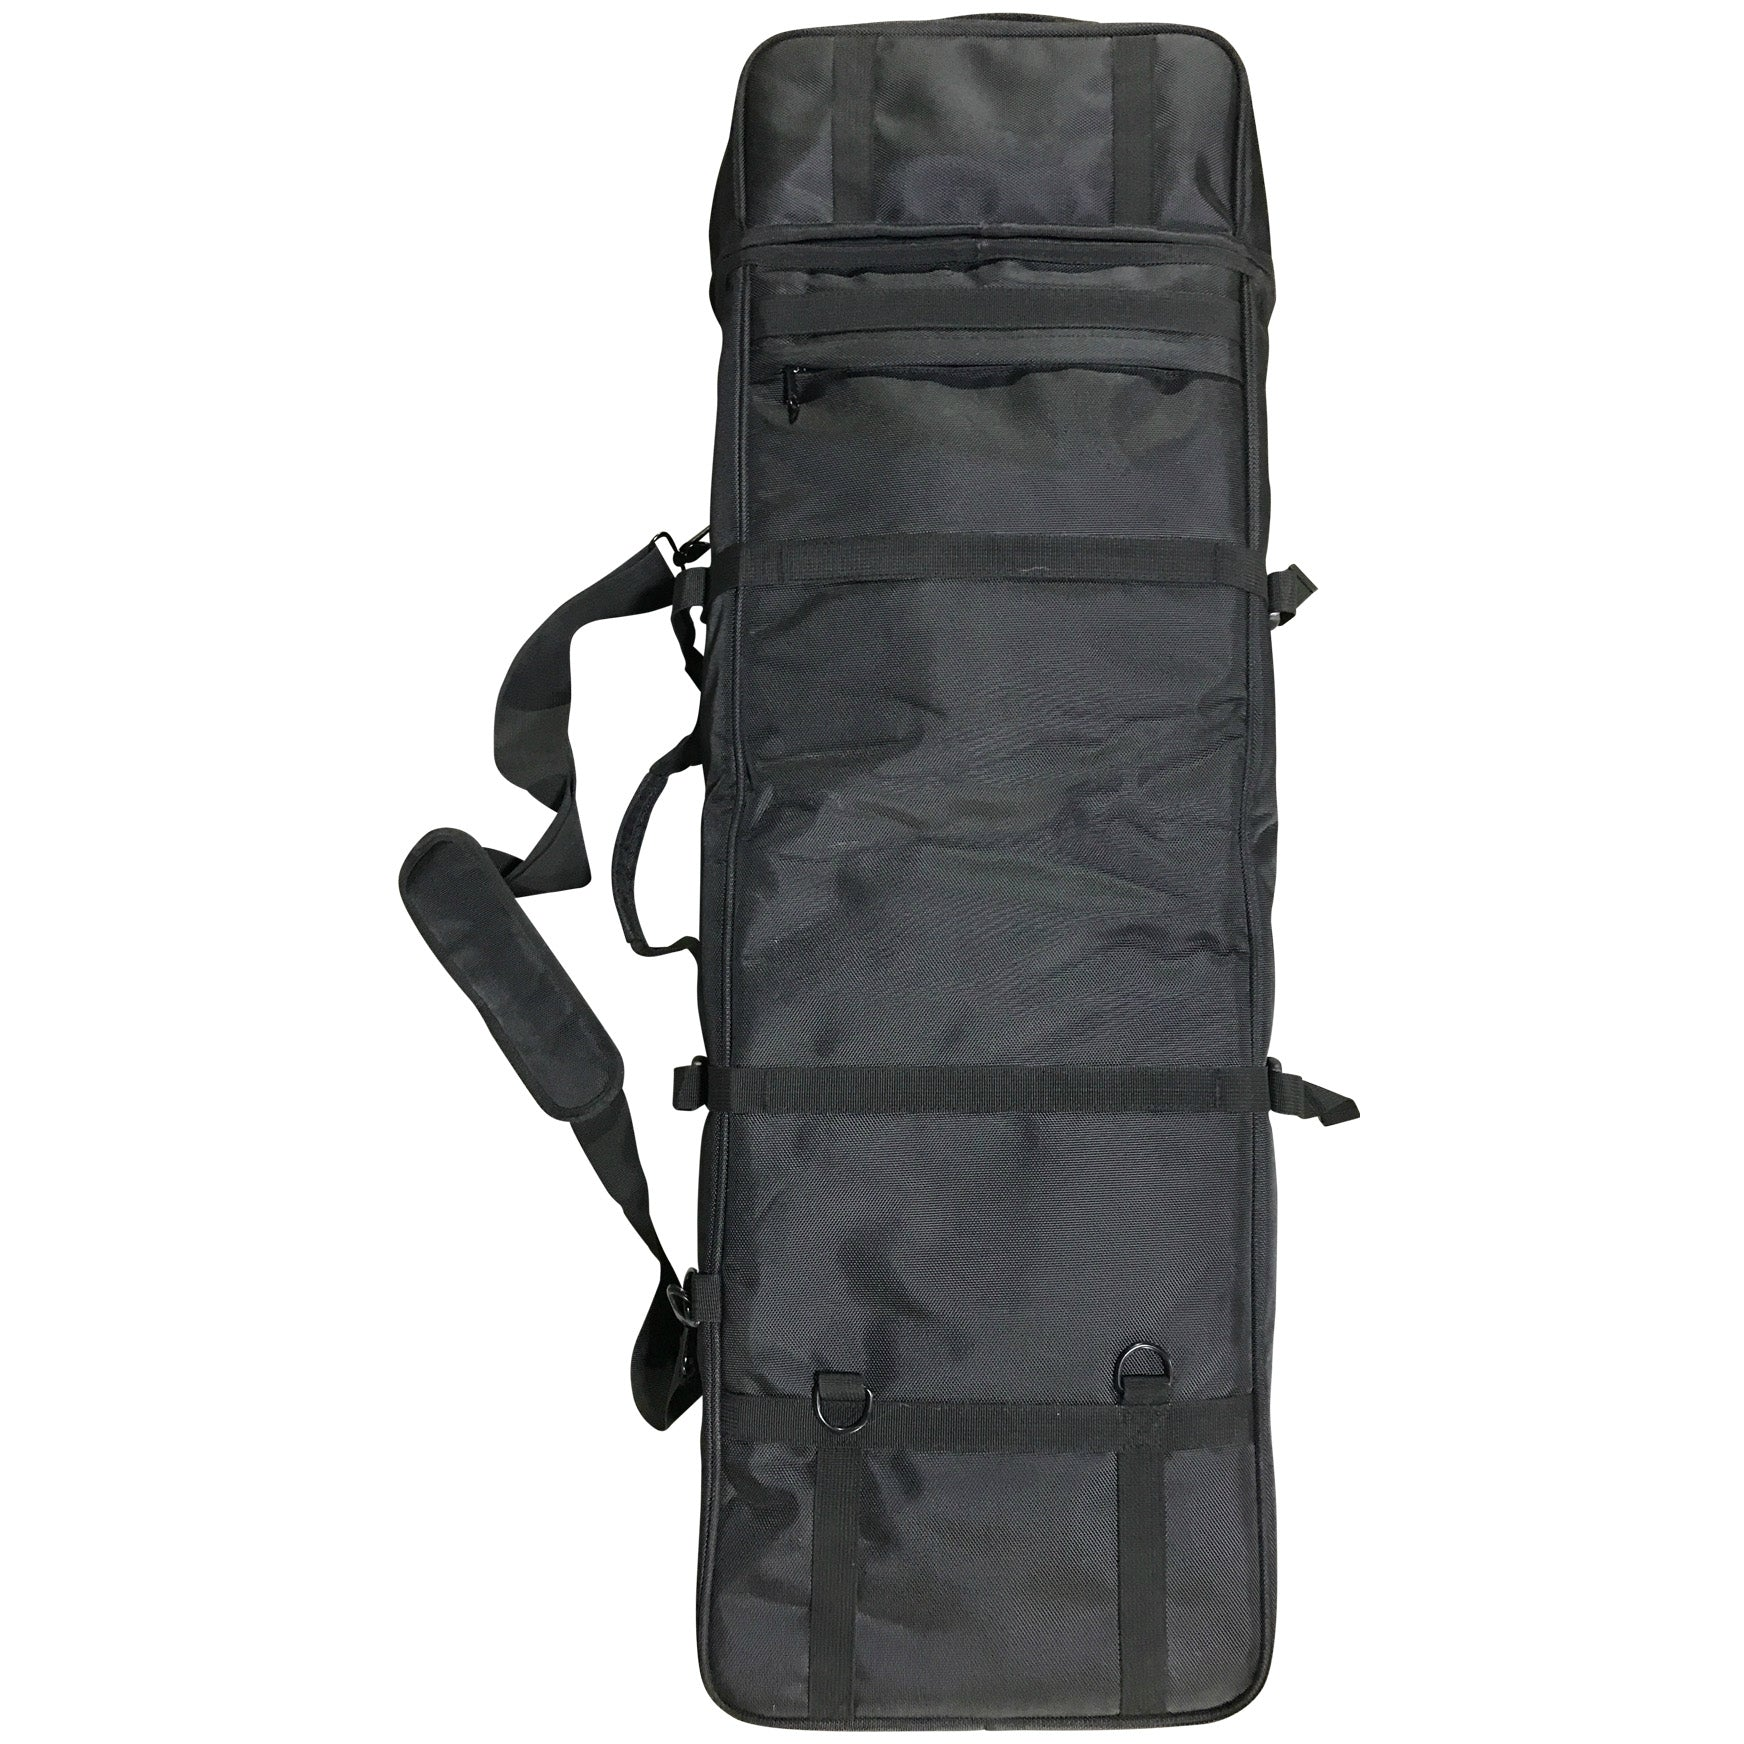 Extendable Length Backpack Boosted Board Travel Bag (BrdBag G4.1)